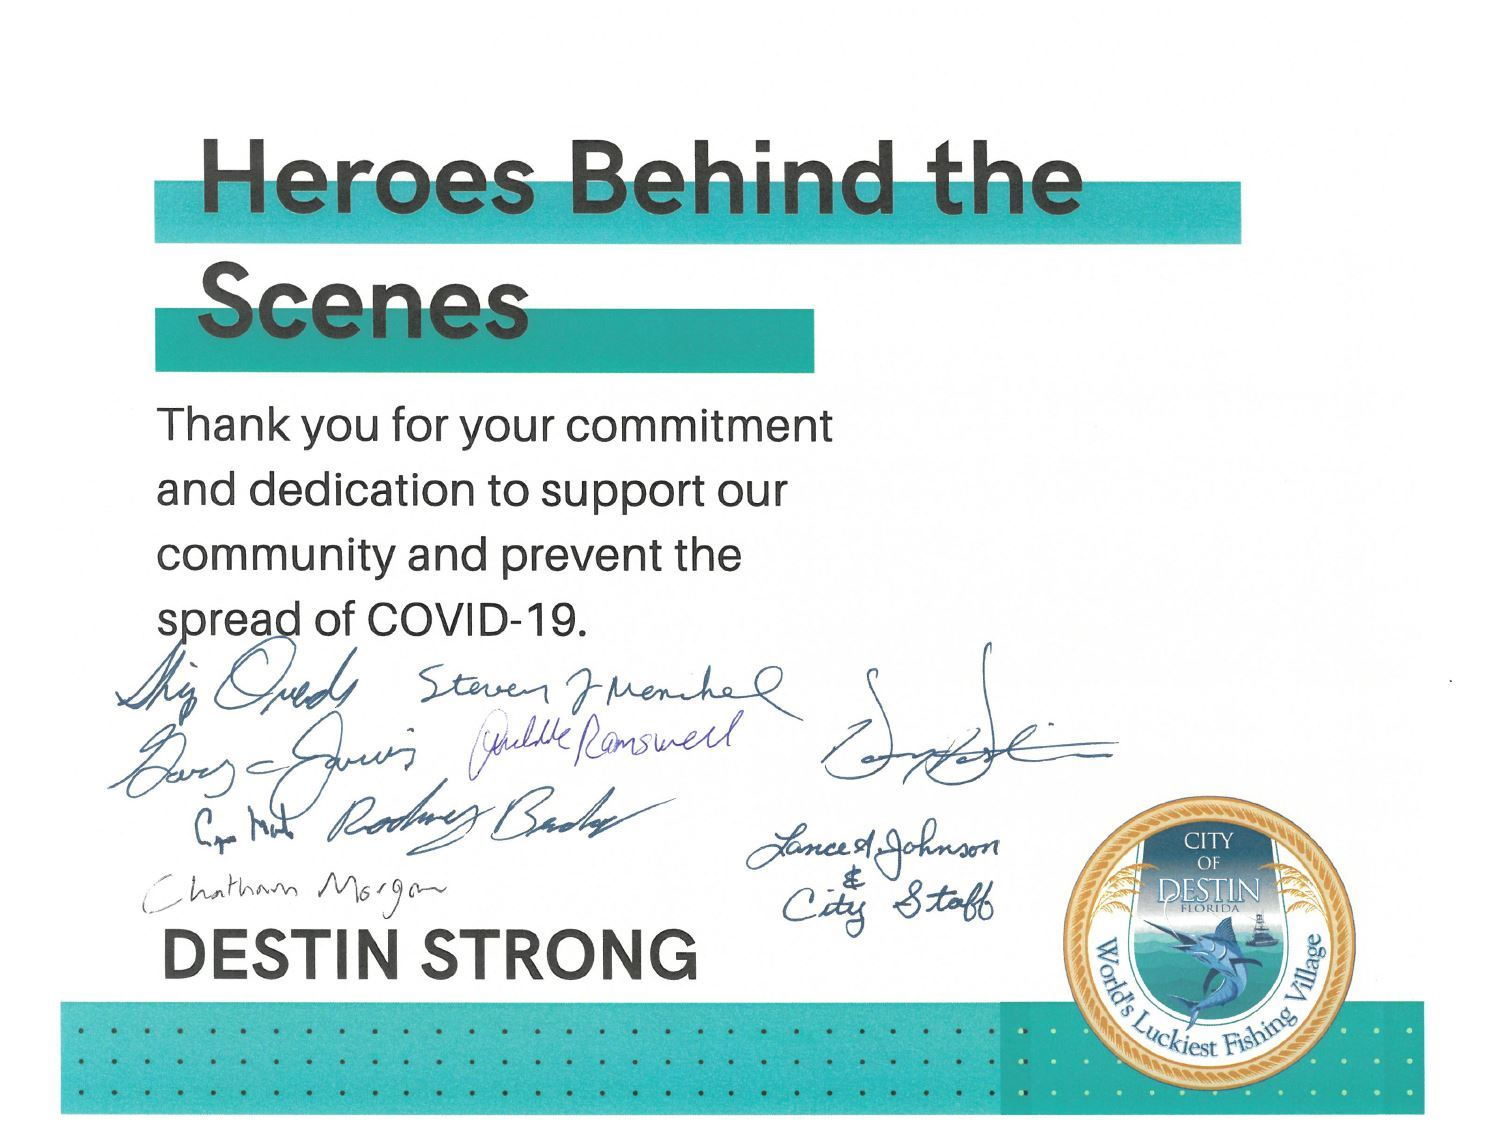 A thank you to our heroes behind the scenes signed by Mayor Gary Jarvis